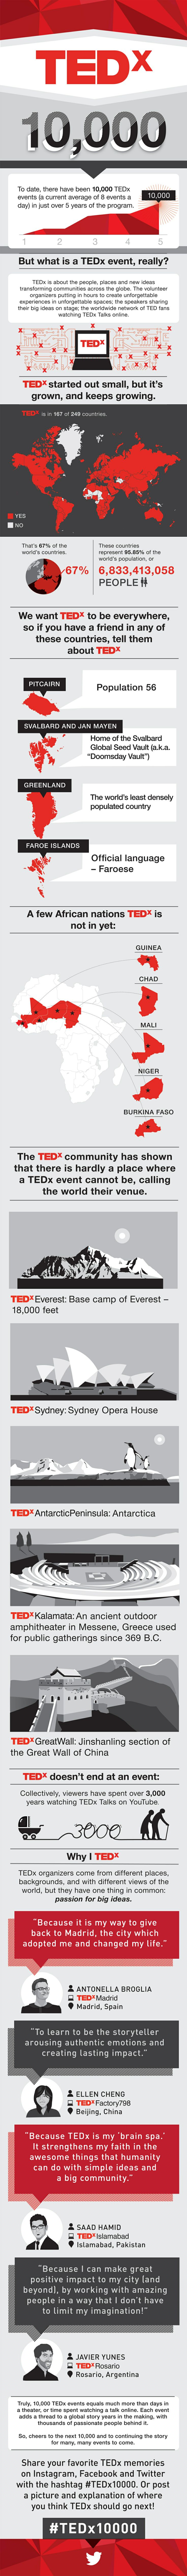 Happy 10,000th event, TEDx! Since its start in 2009, TEDx events have been held in 167 countries at an average rate of 8 per day. #TEDx10000.